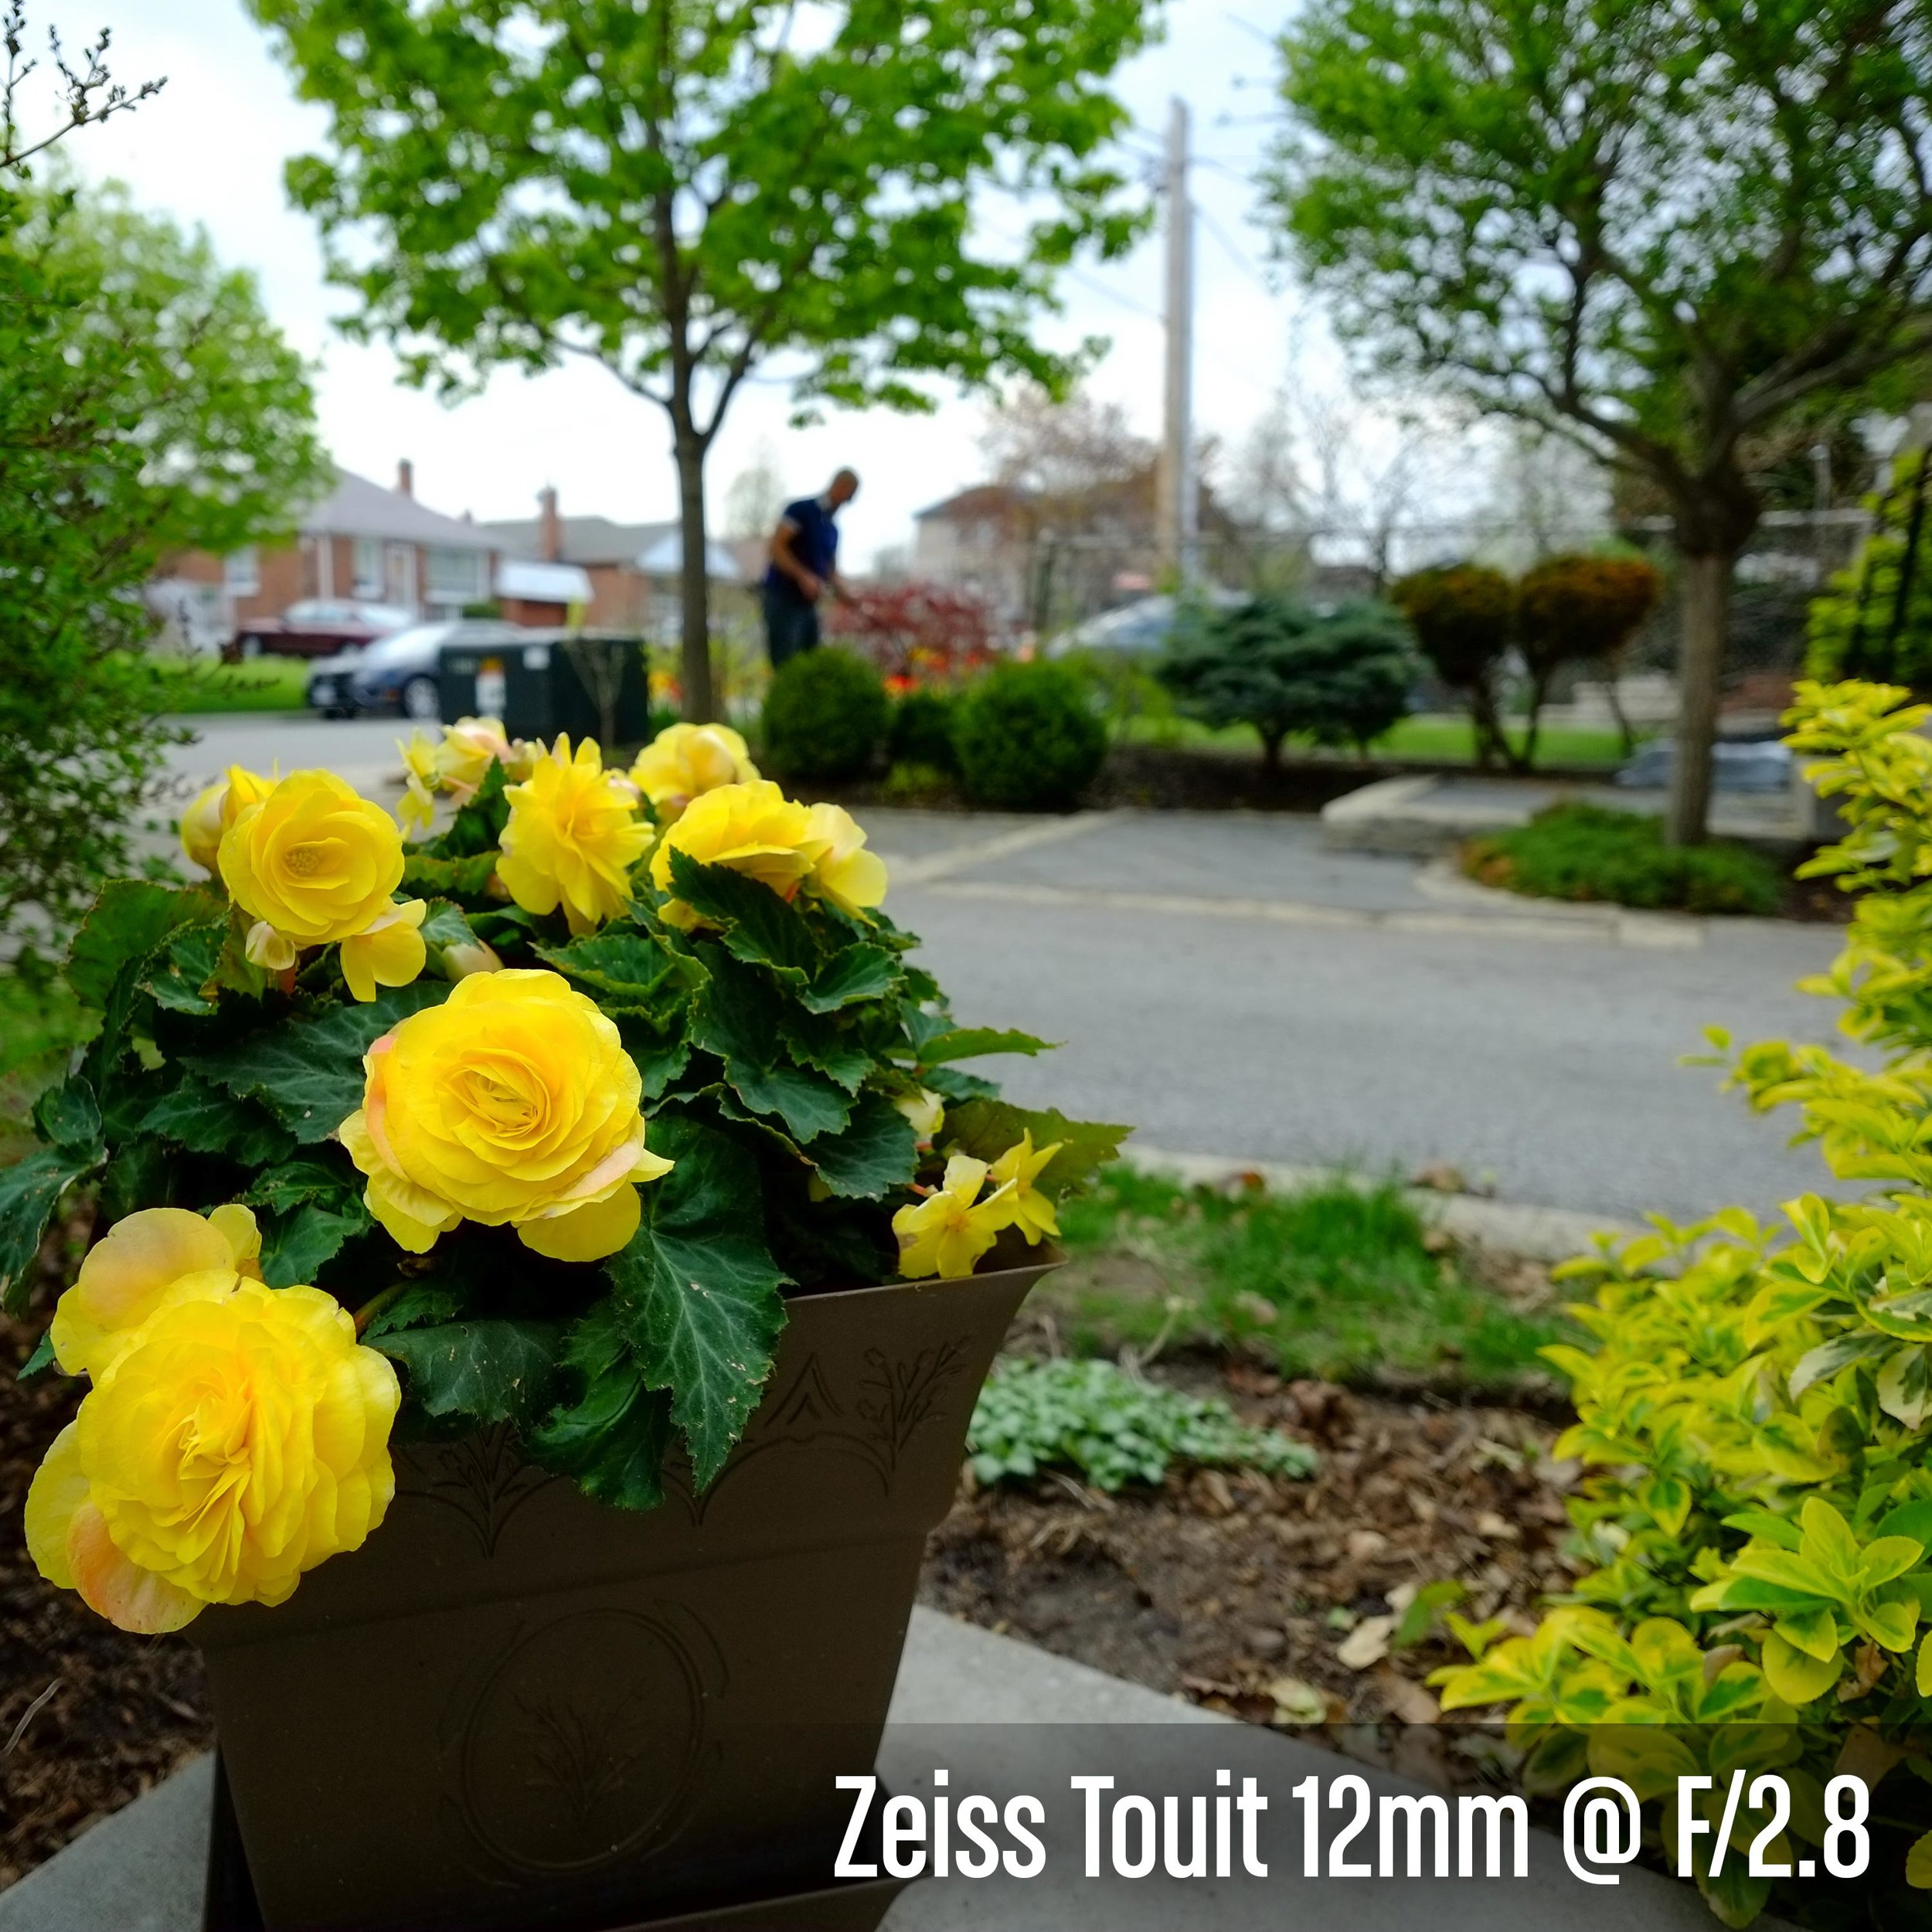 Zeiss Touit 12mm @ F_2.8.jpg